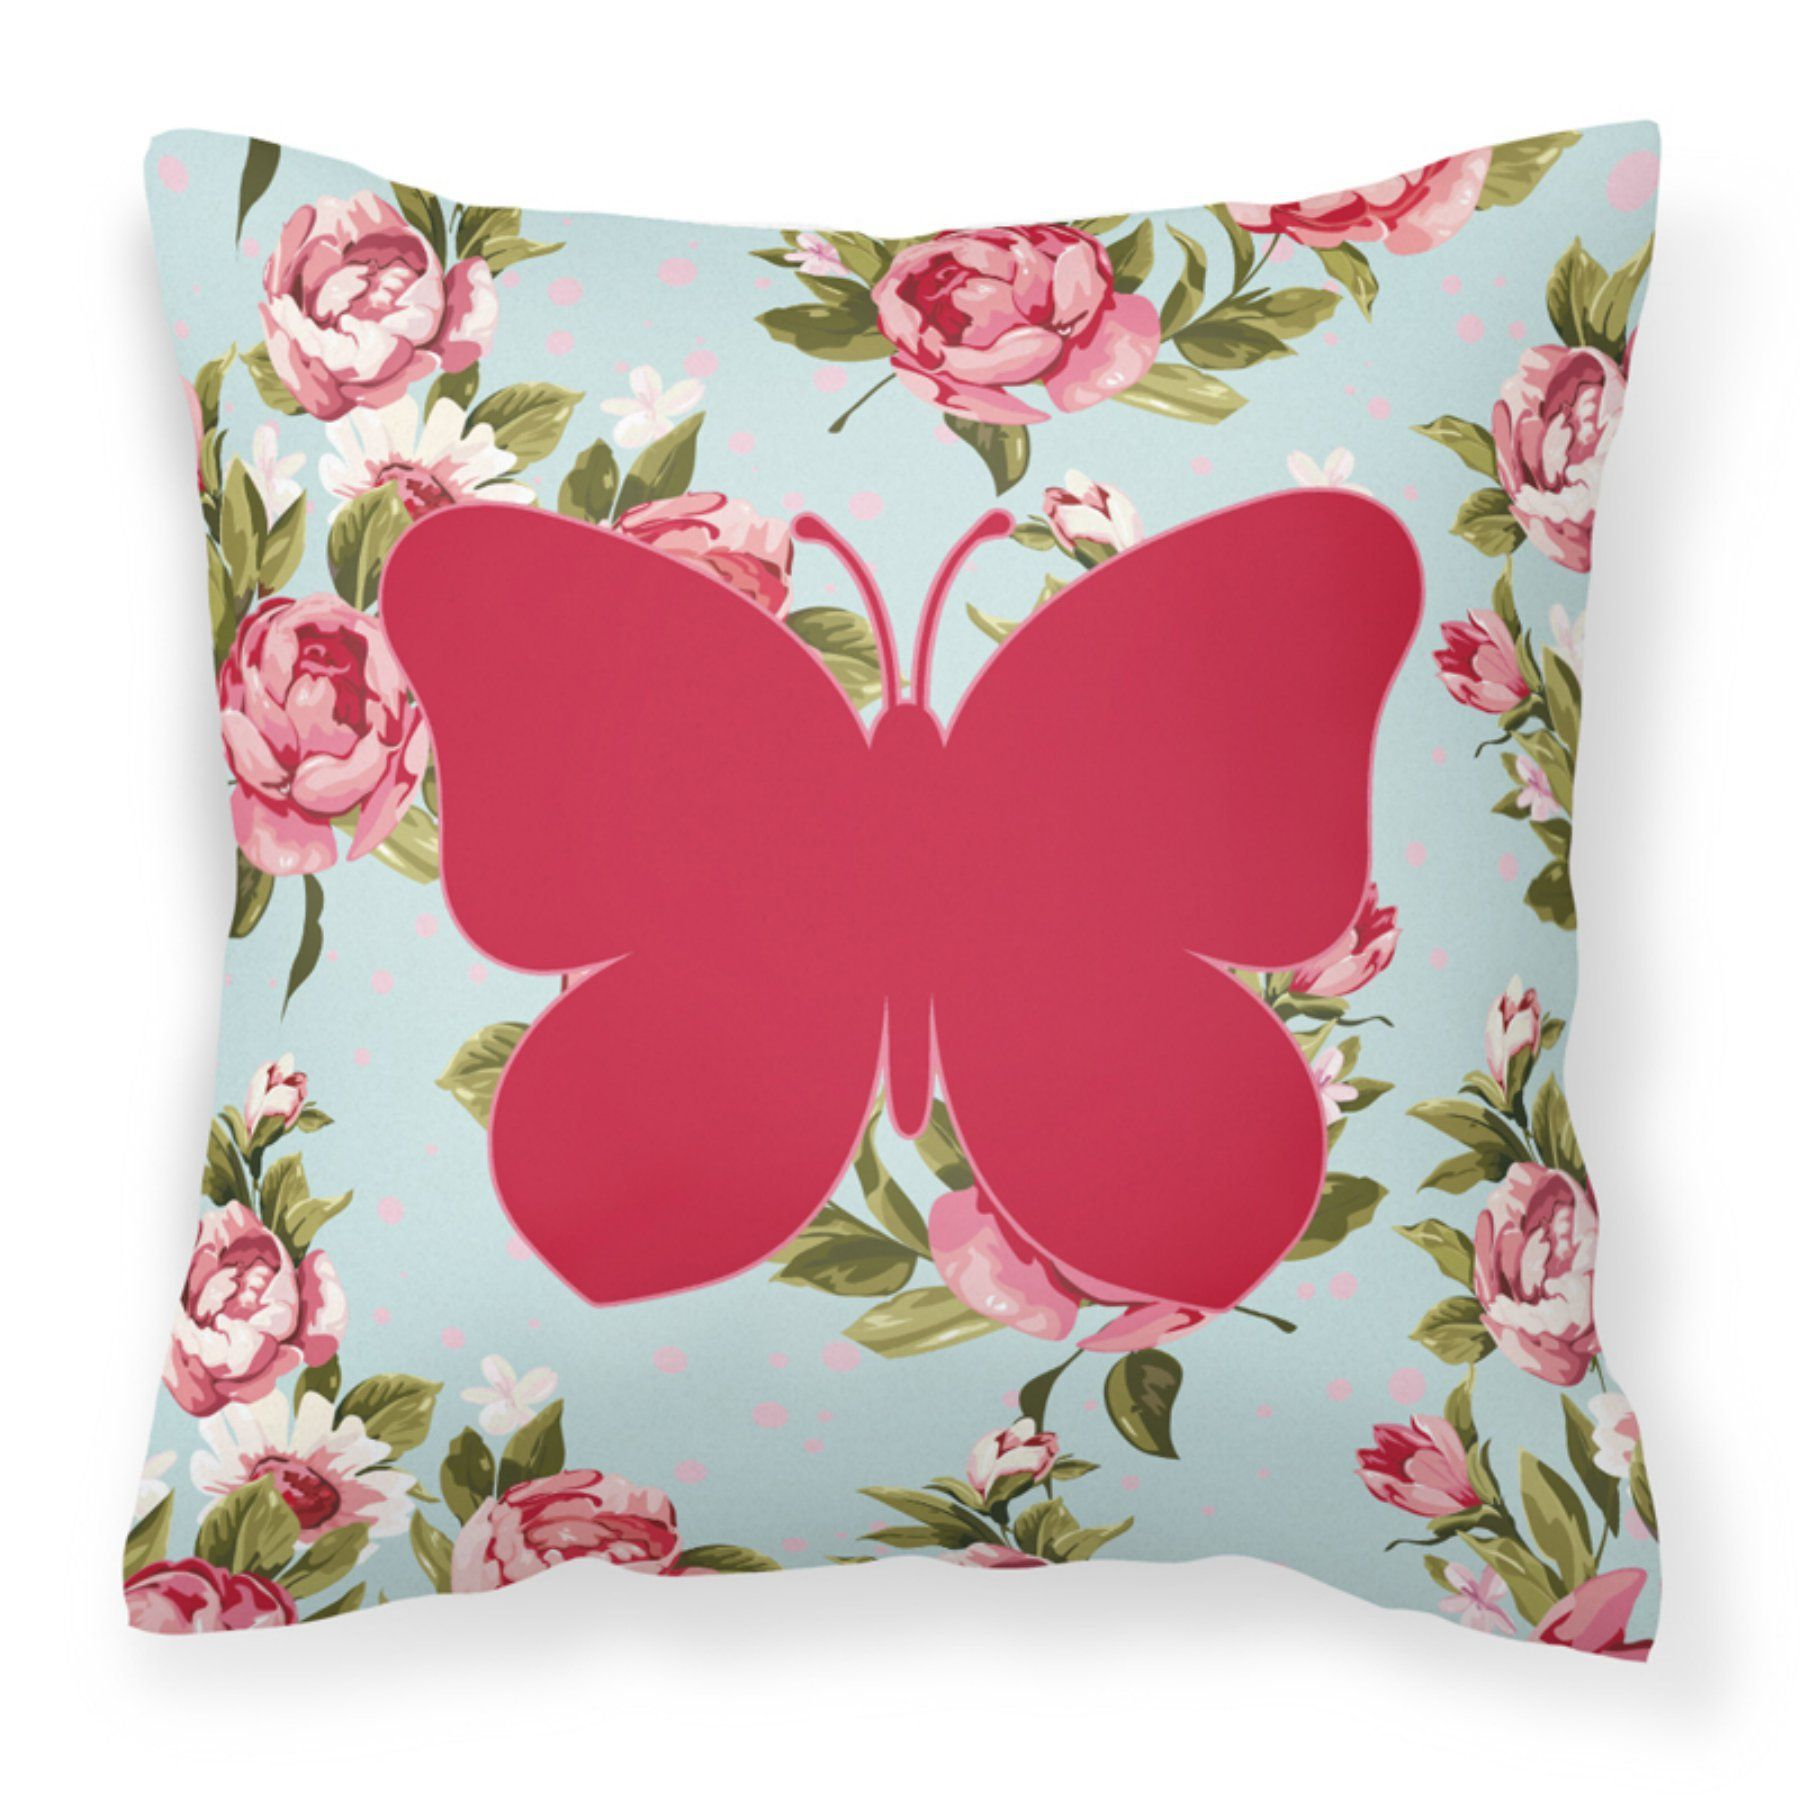 Carolines Treasures Butterfly Roses Polyester Fabric Square Decorative Outdoor Pillow - BB1047-RS-BU-PW1414